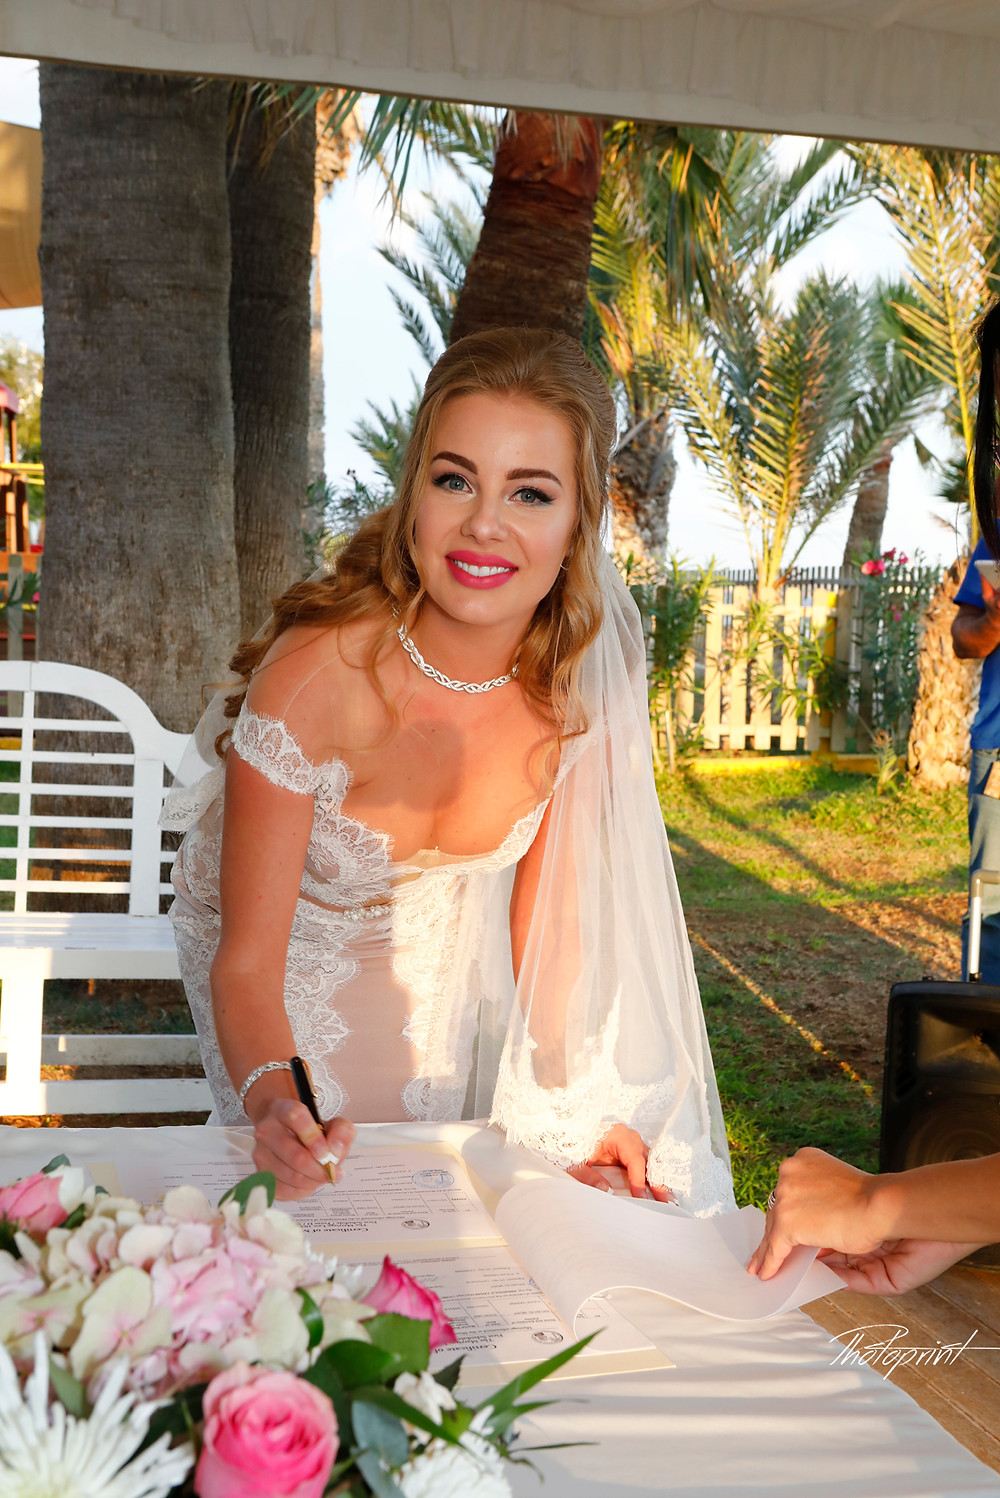 Wedding photographers in larnaca cyprus, the most prestigious wedding photography in the  Island of Cyprus. For all your wedding photography needs, our professionalism and creativity, make your dreams come true and memories treasured ...